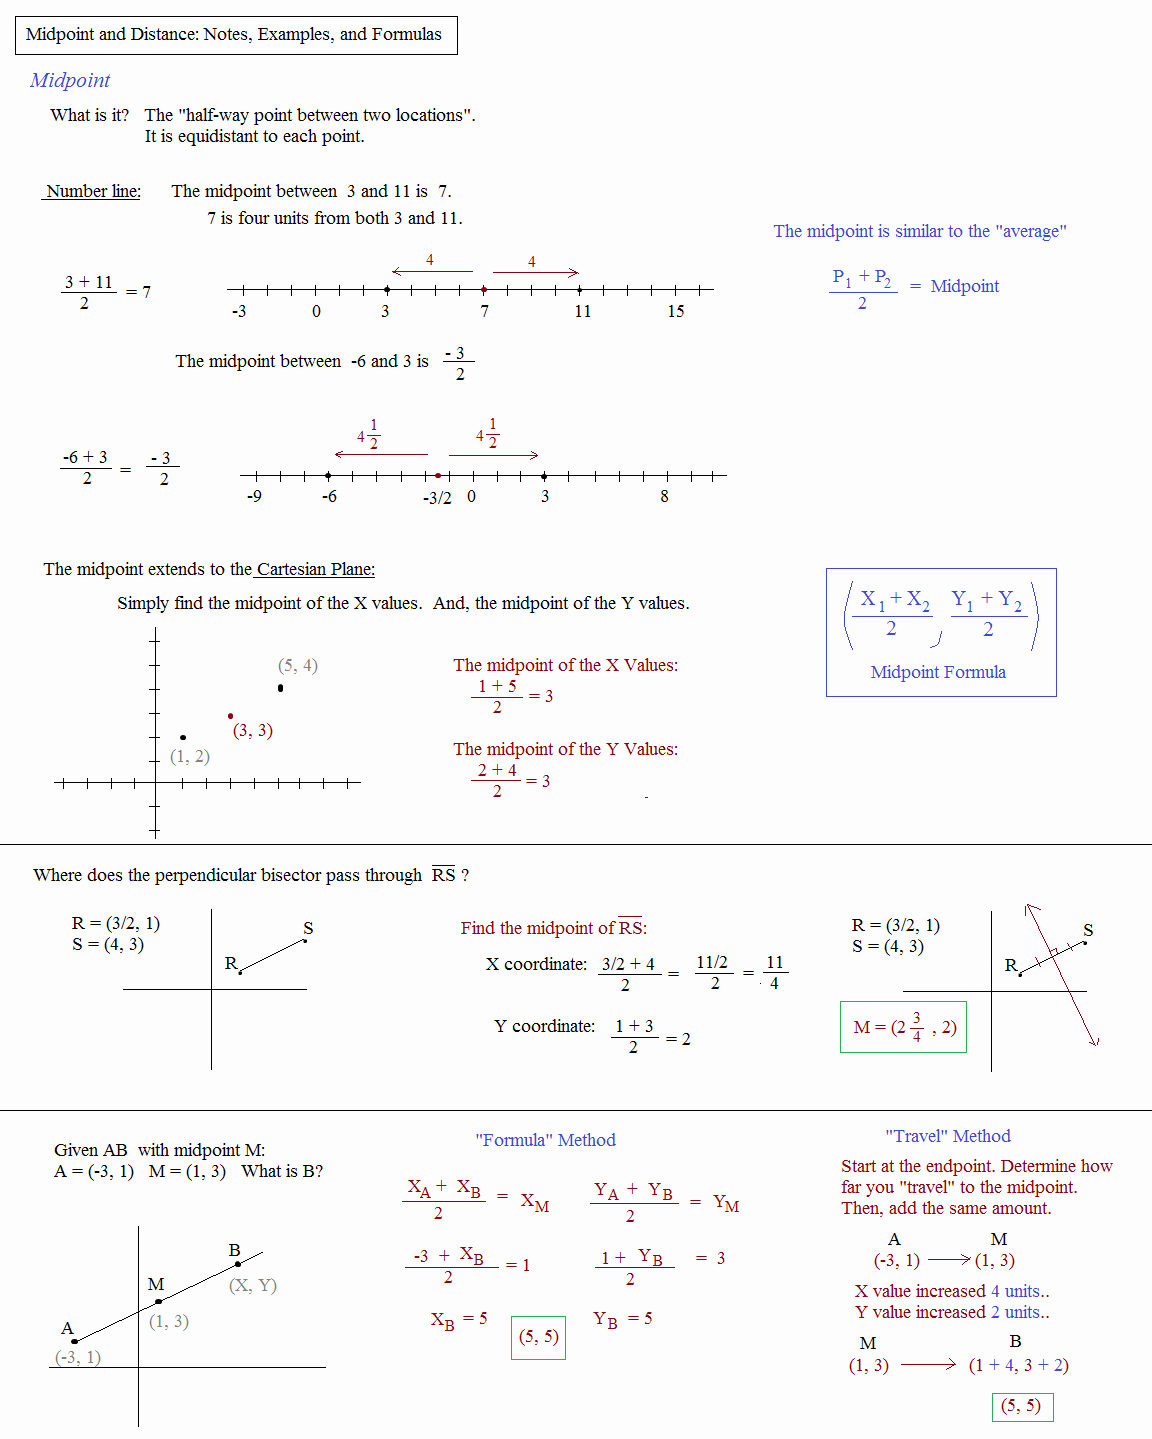 The Midpoint formula Worksheet Answers Best Of Math Plane Midpoint and Distance